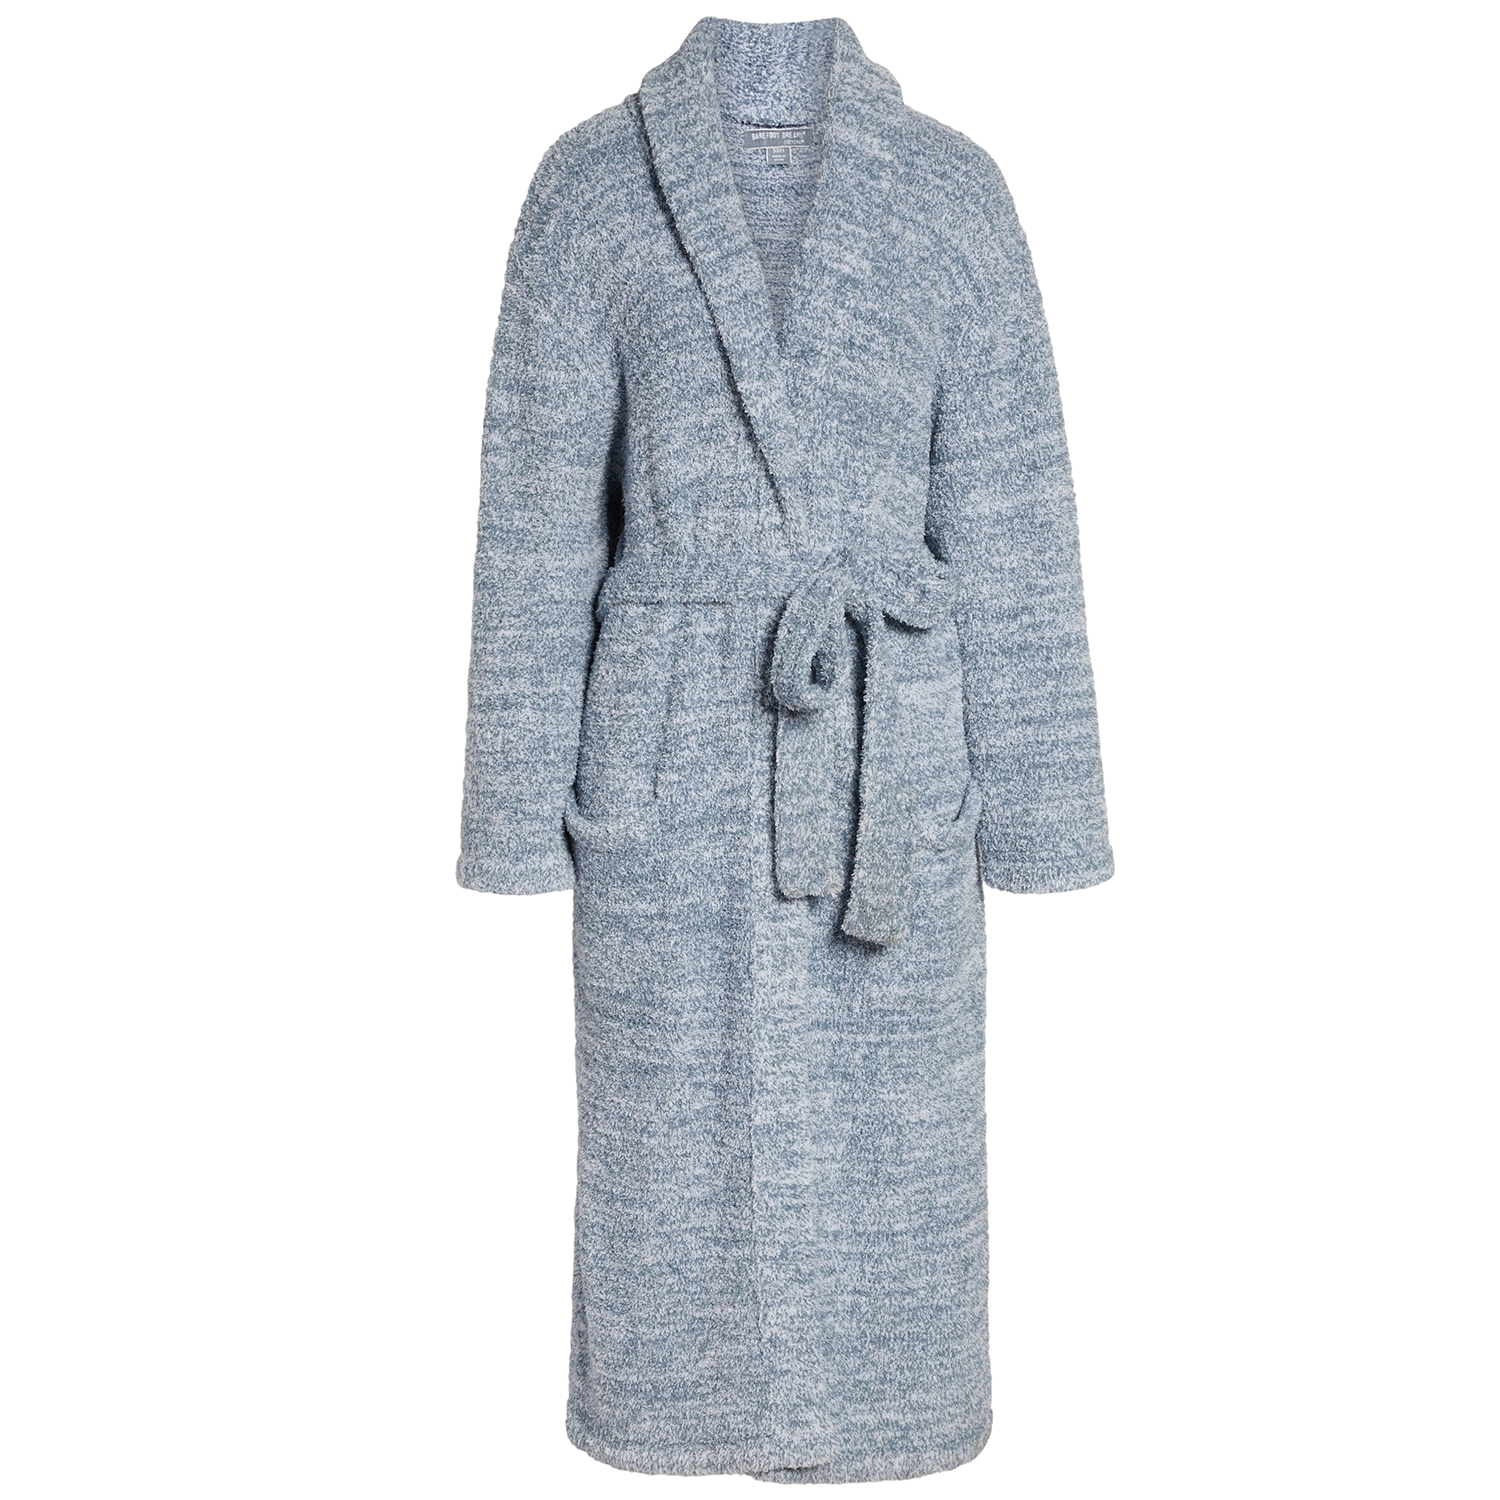 CozyChic Unisex Robe Barefoot Dreams Heathered Dusk